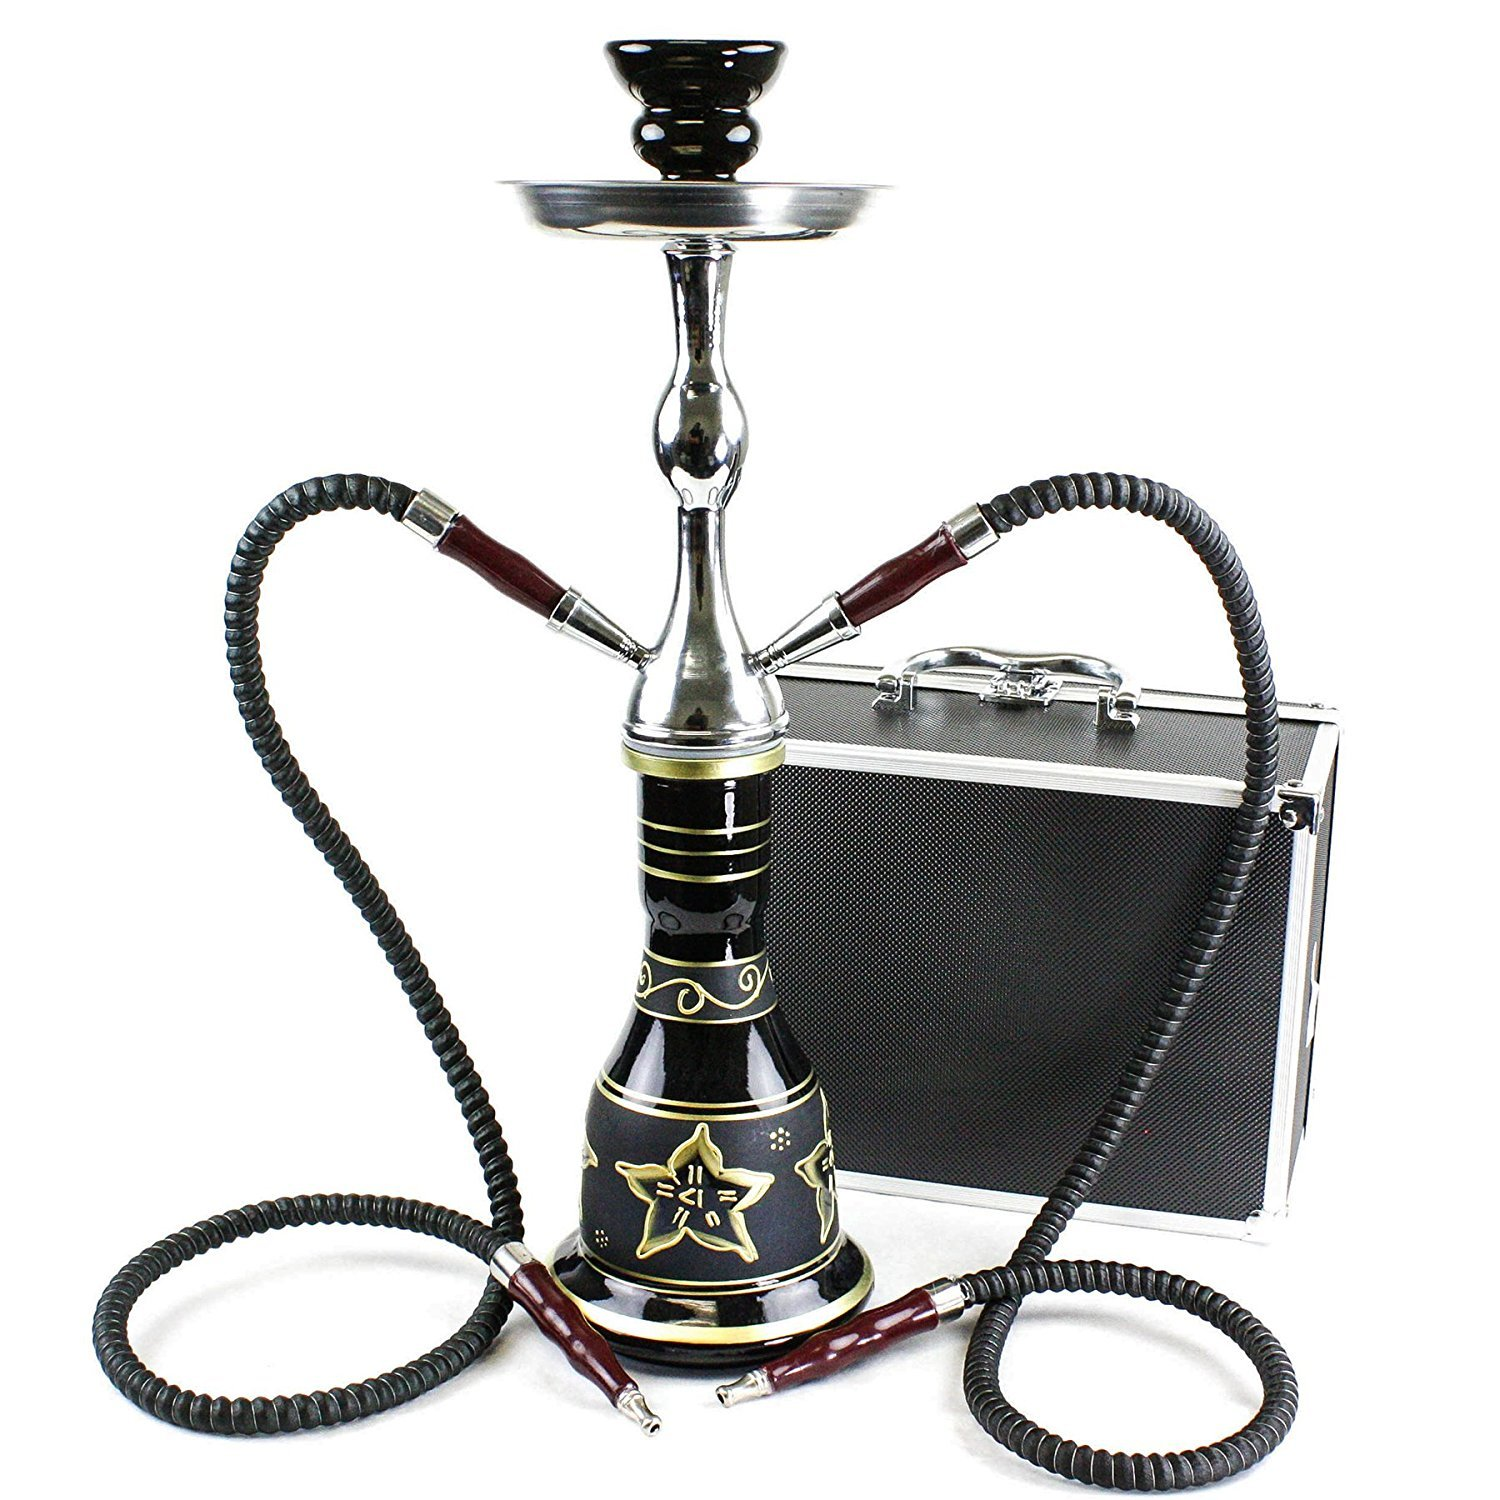 GStar Convertible Series: 18'' 1 or 2 Hose Hookah Complete Set w/Case - Majestic Glass Vase (Tuscany Black) by GStar